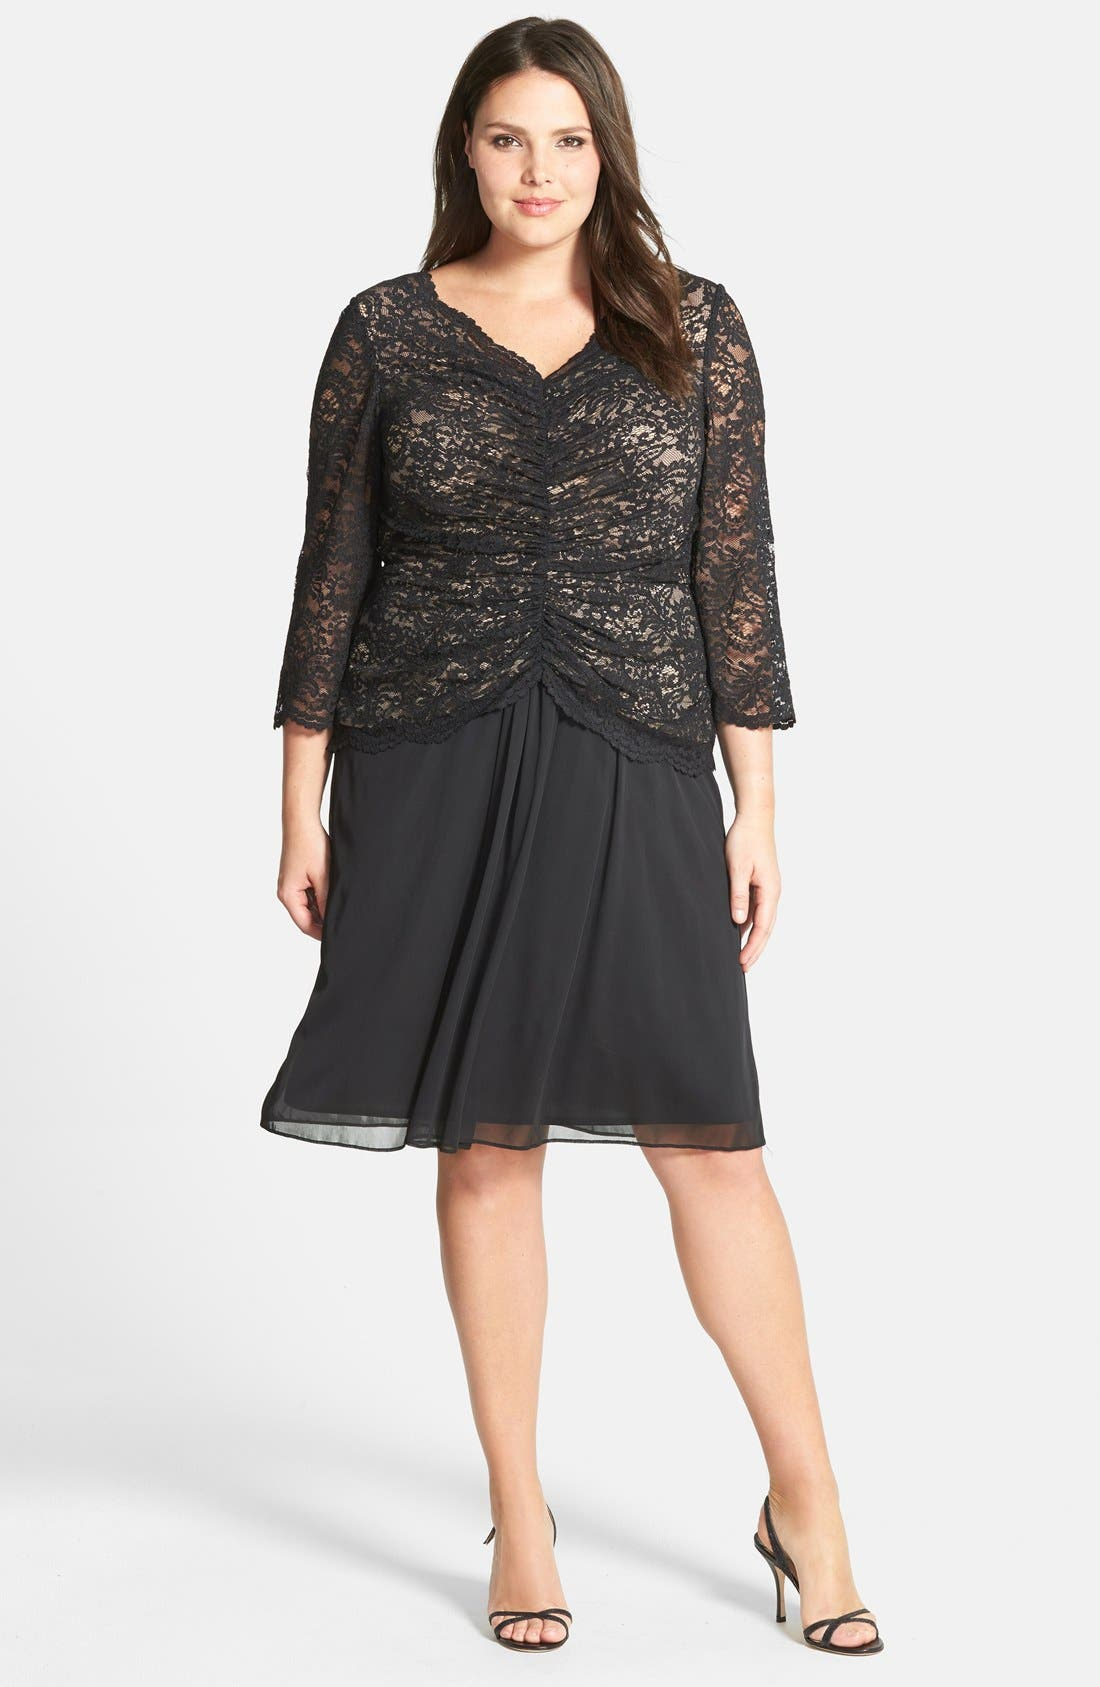 Alternate Image 1 Selected - Alex Evenings Shirred Lace Bodice Dress (Plus Size)